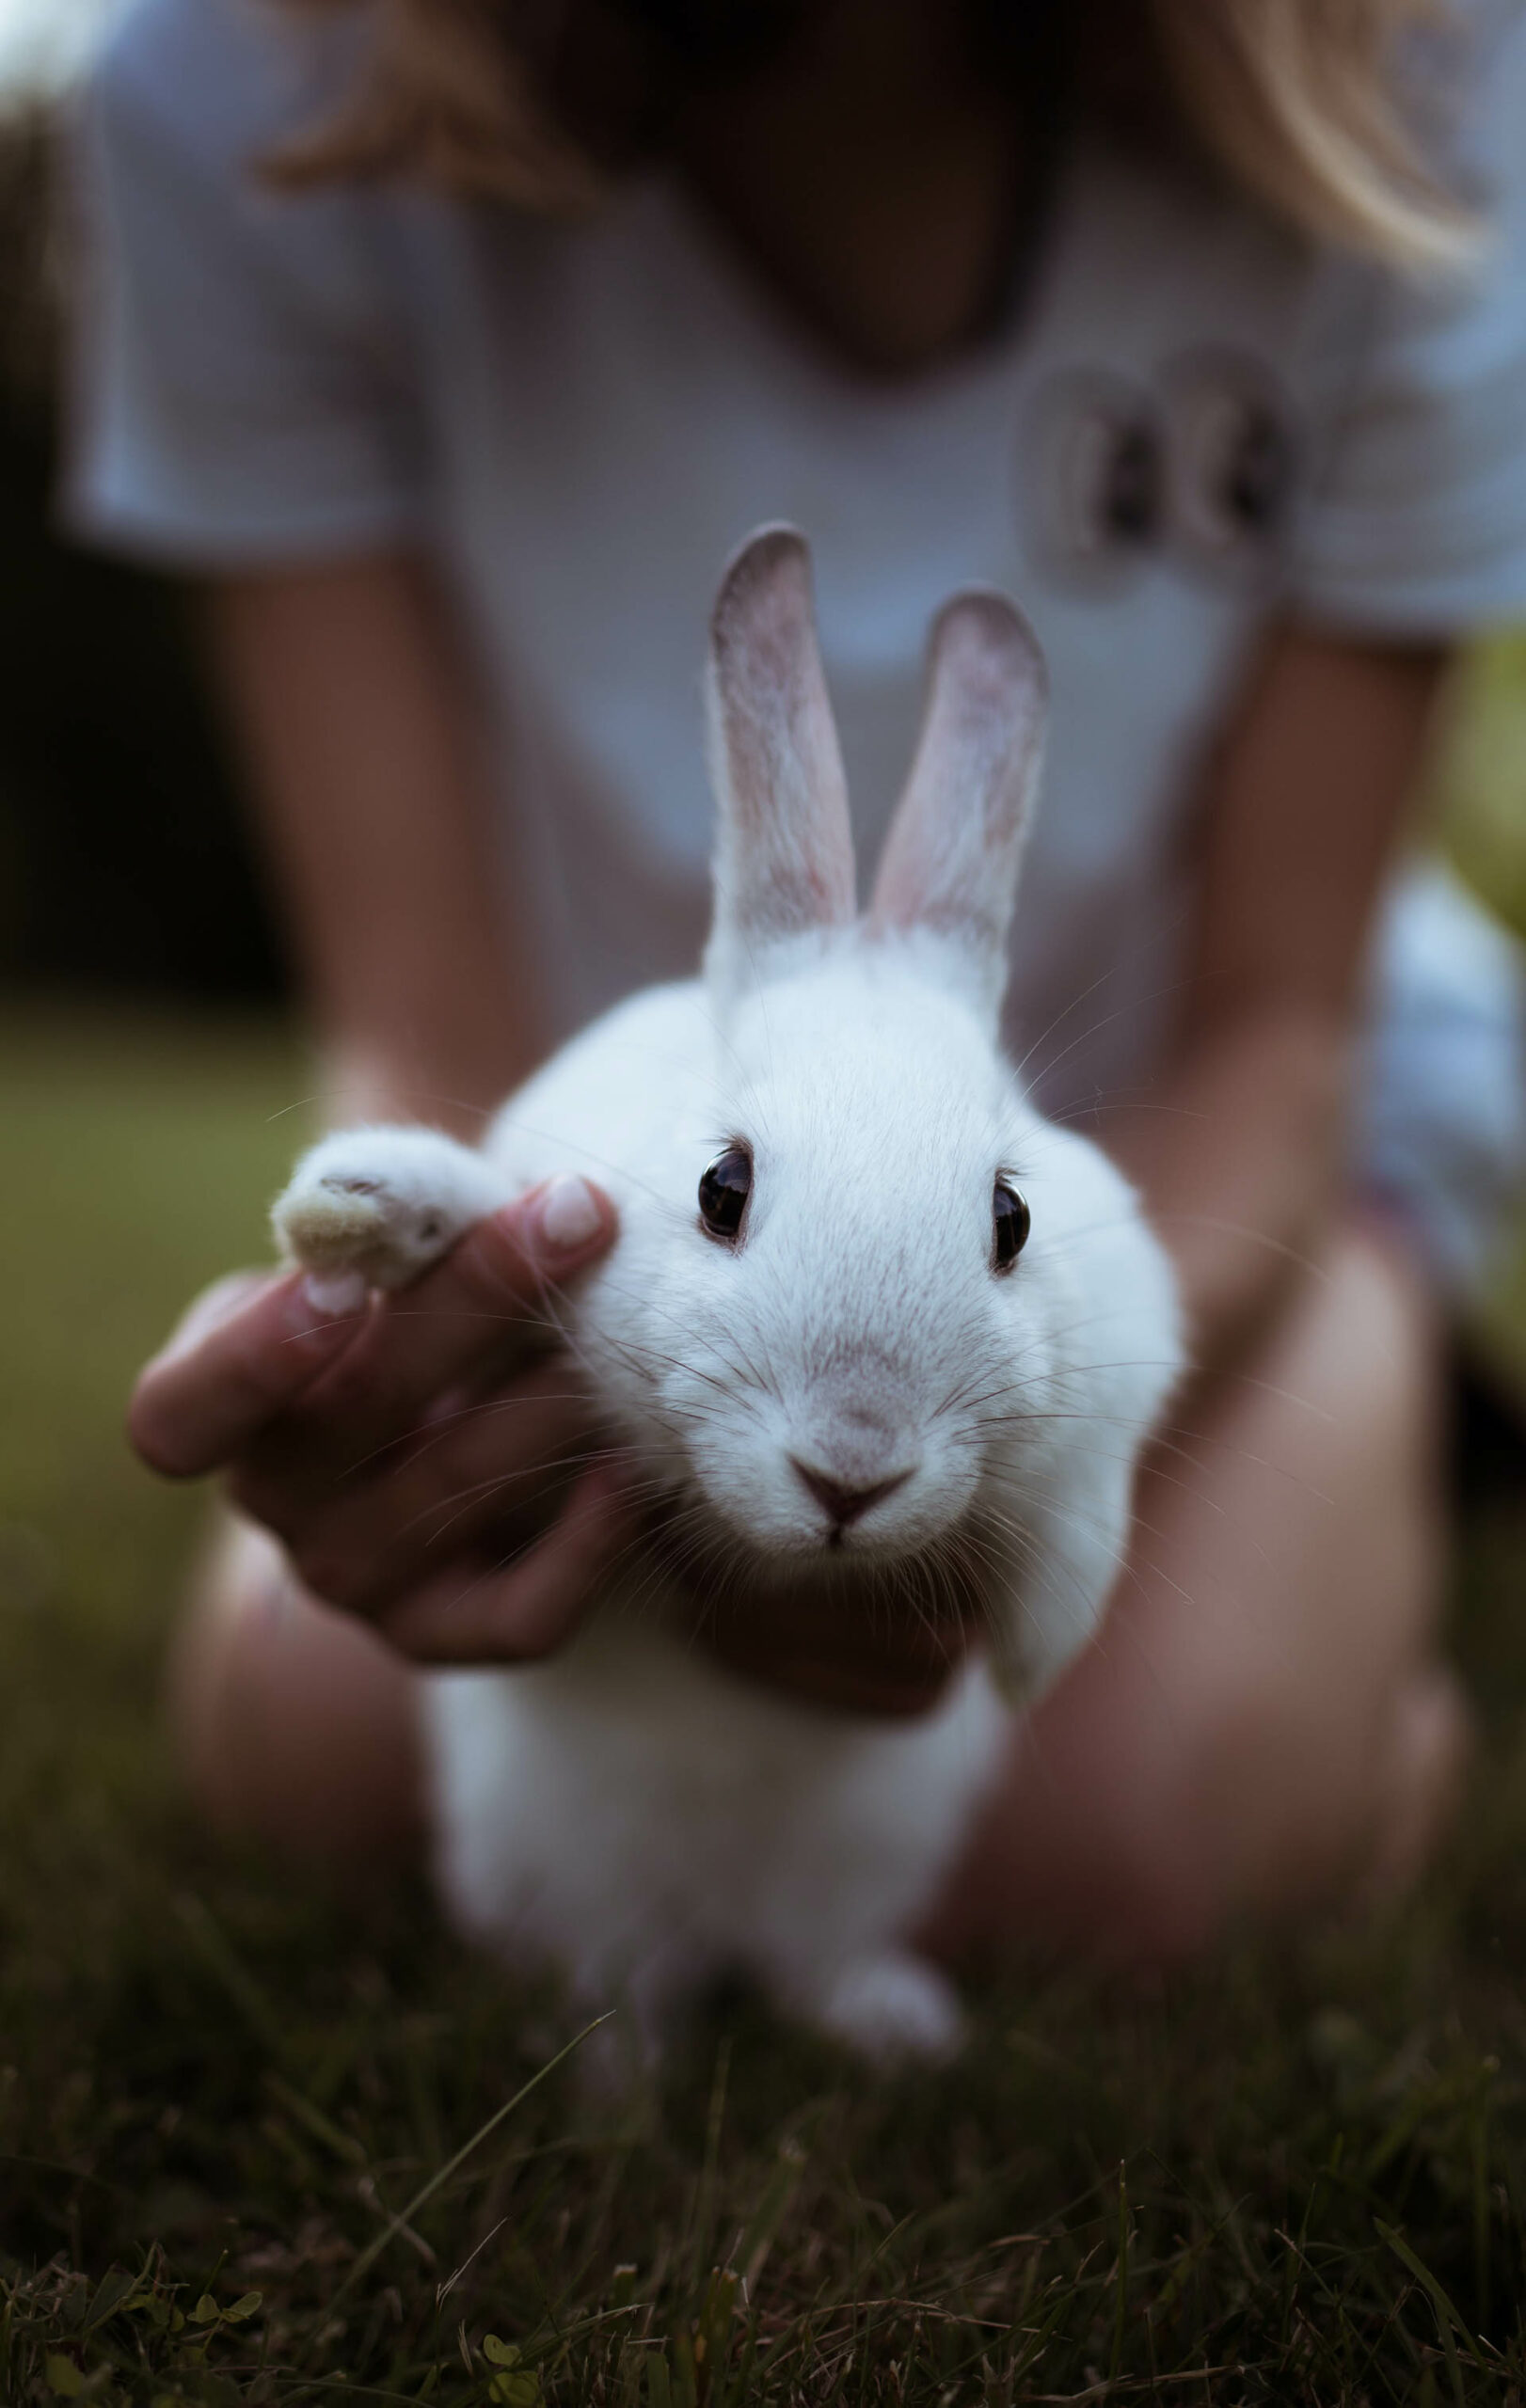 Girl holding her rabbit in front of camera from Freejpg